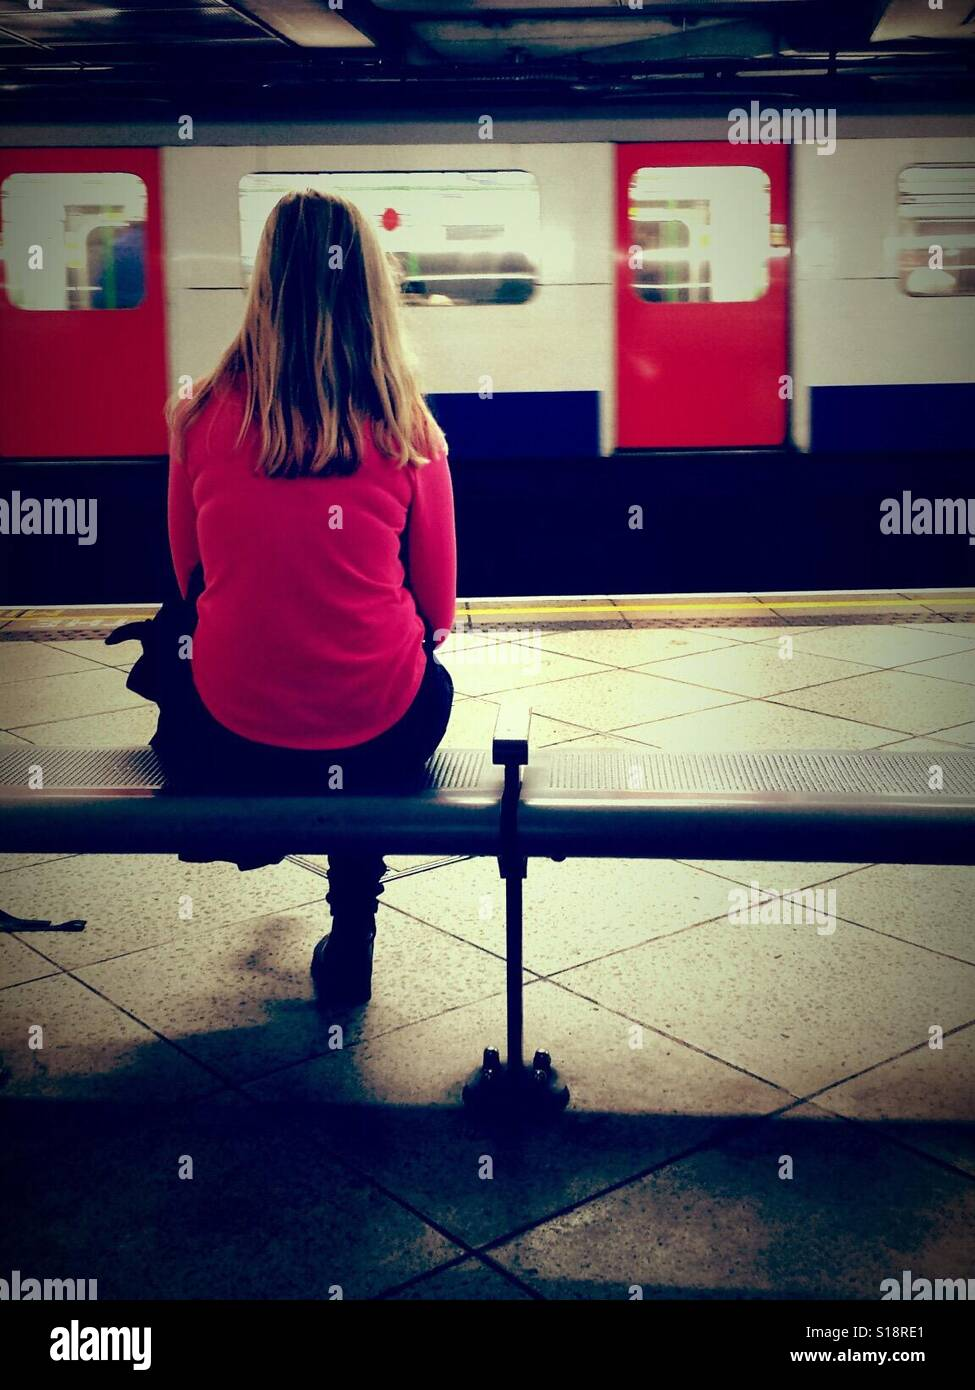 Woman sitting on a bench at London Underground Tube station watching train go by. - Stock Image